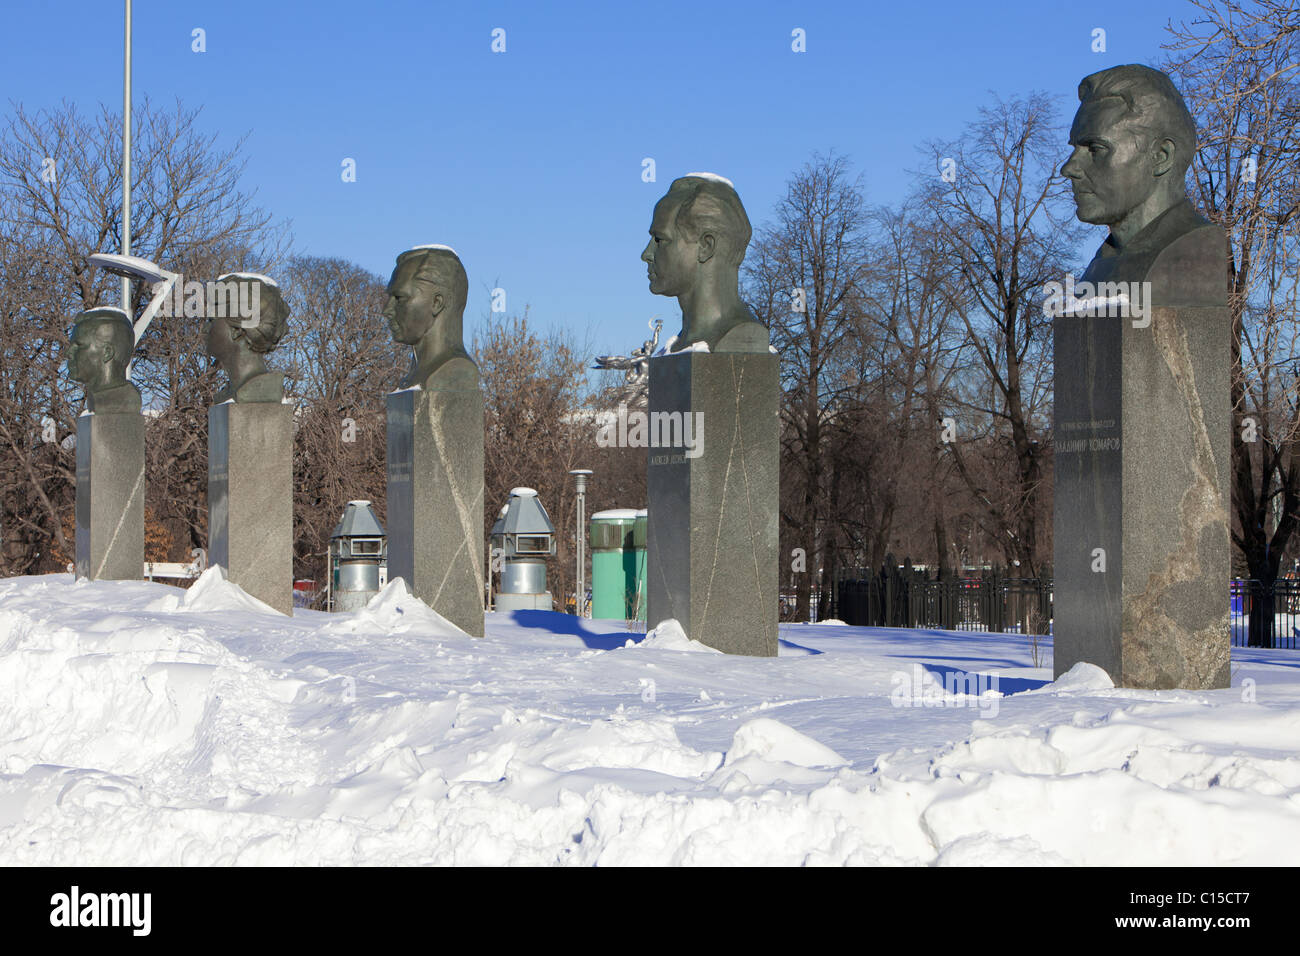 Soviet memorial dedicated to cosmonauts from kaliningrad - The Statues Of 5 Famous Soviet Cosmonauts At Cosmonauts Alley In Moscow Russia Stock